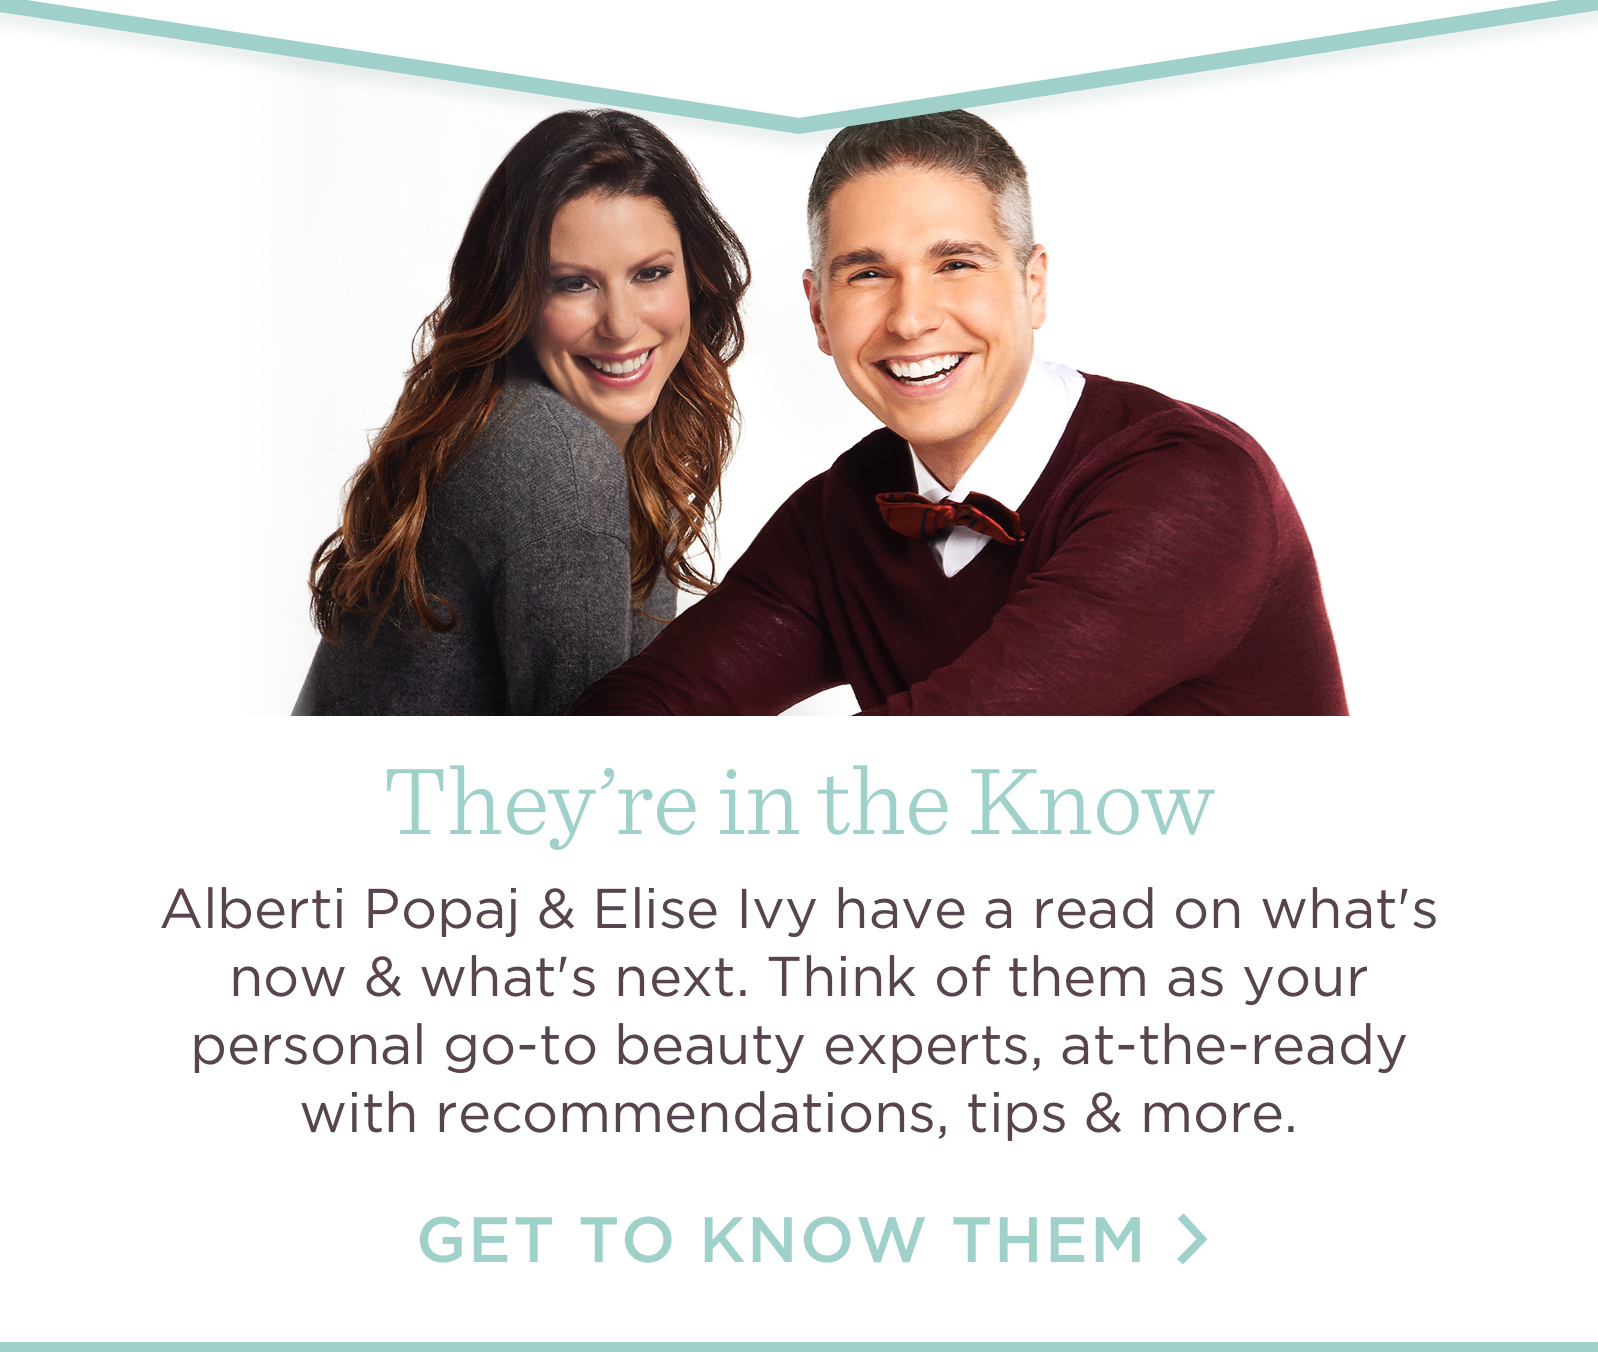 They're in the Know, Alberti Popaj & Elise Ivy have a read on what's now & what's next. Think of them as your personal go-to beauty experts, at-the-ready with recommendations, tip & more. Get to know them.